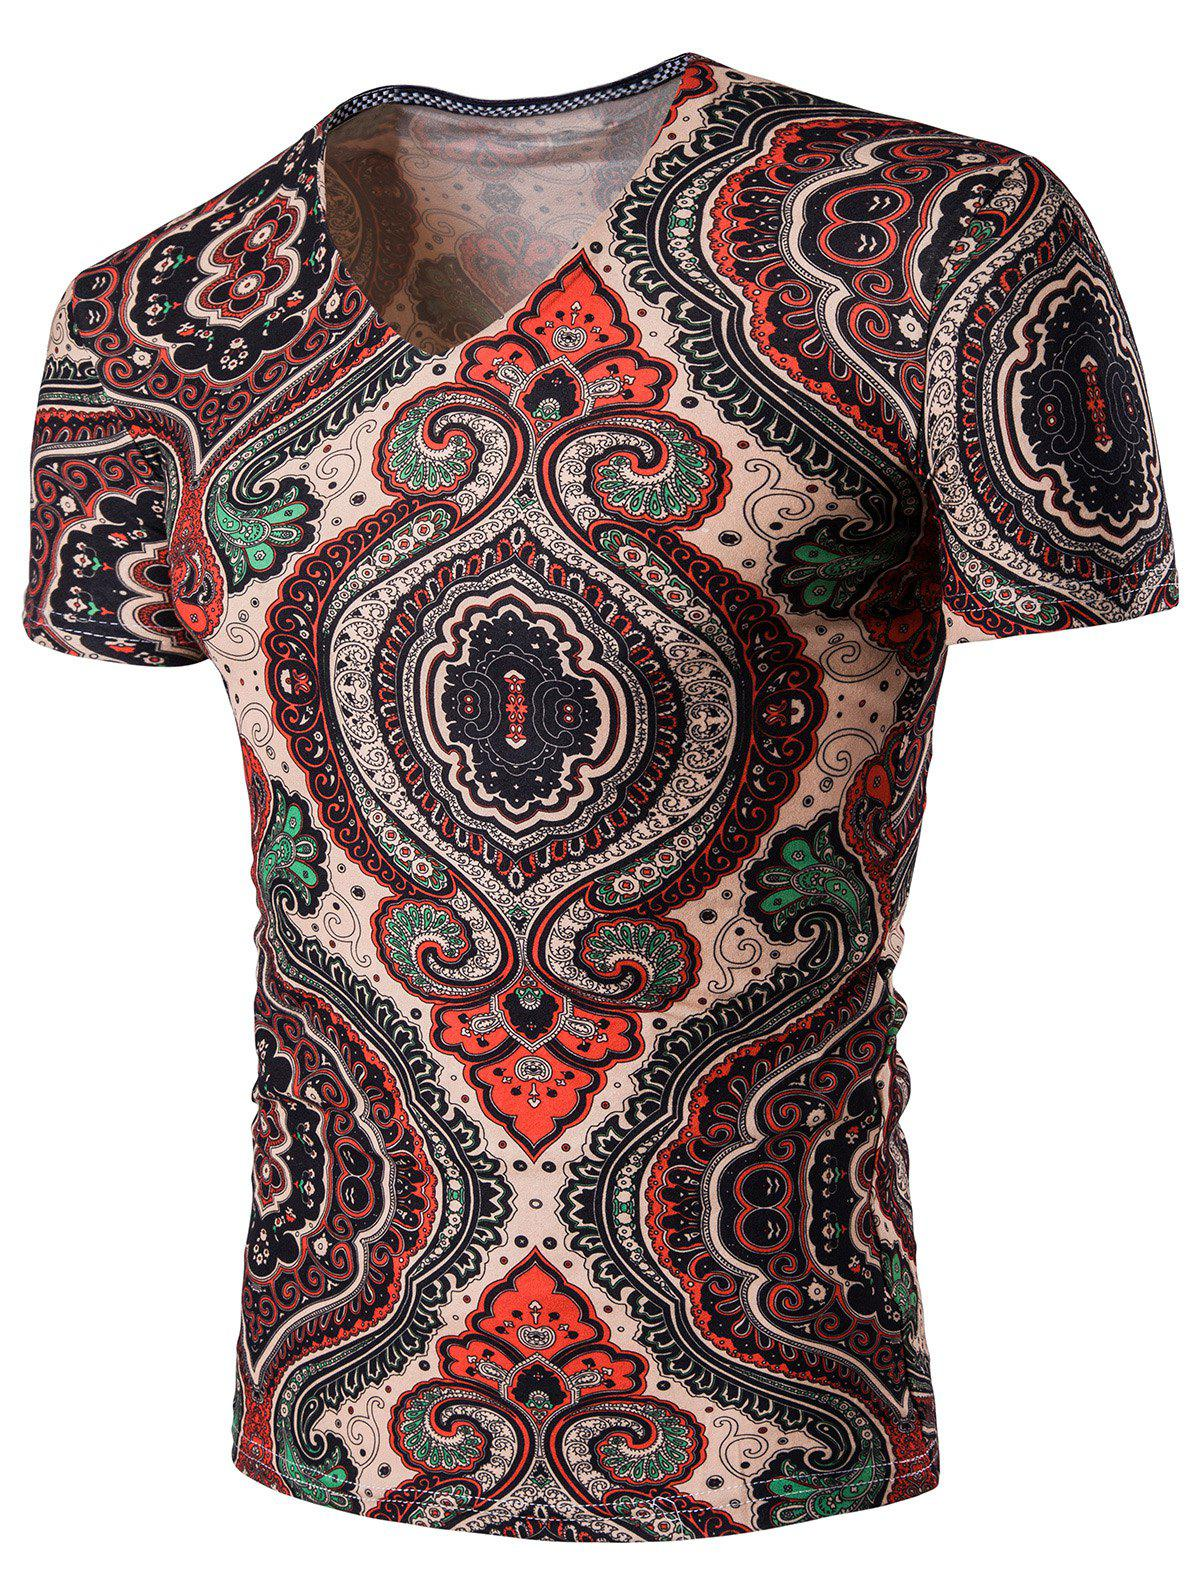 Tribal Print V Neck T-Shirt - multicolore 3XL